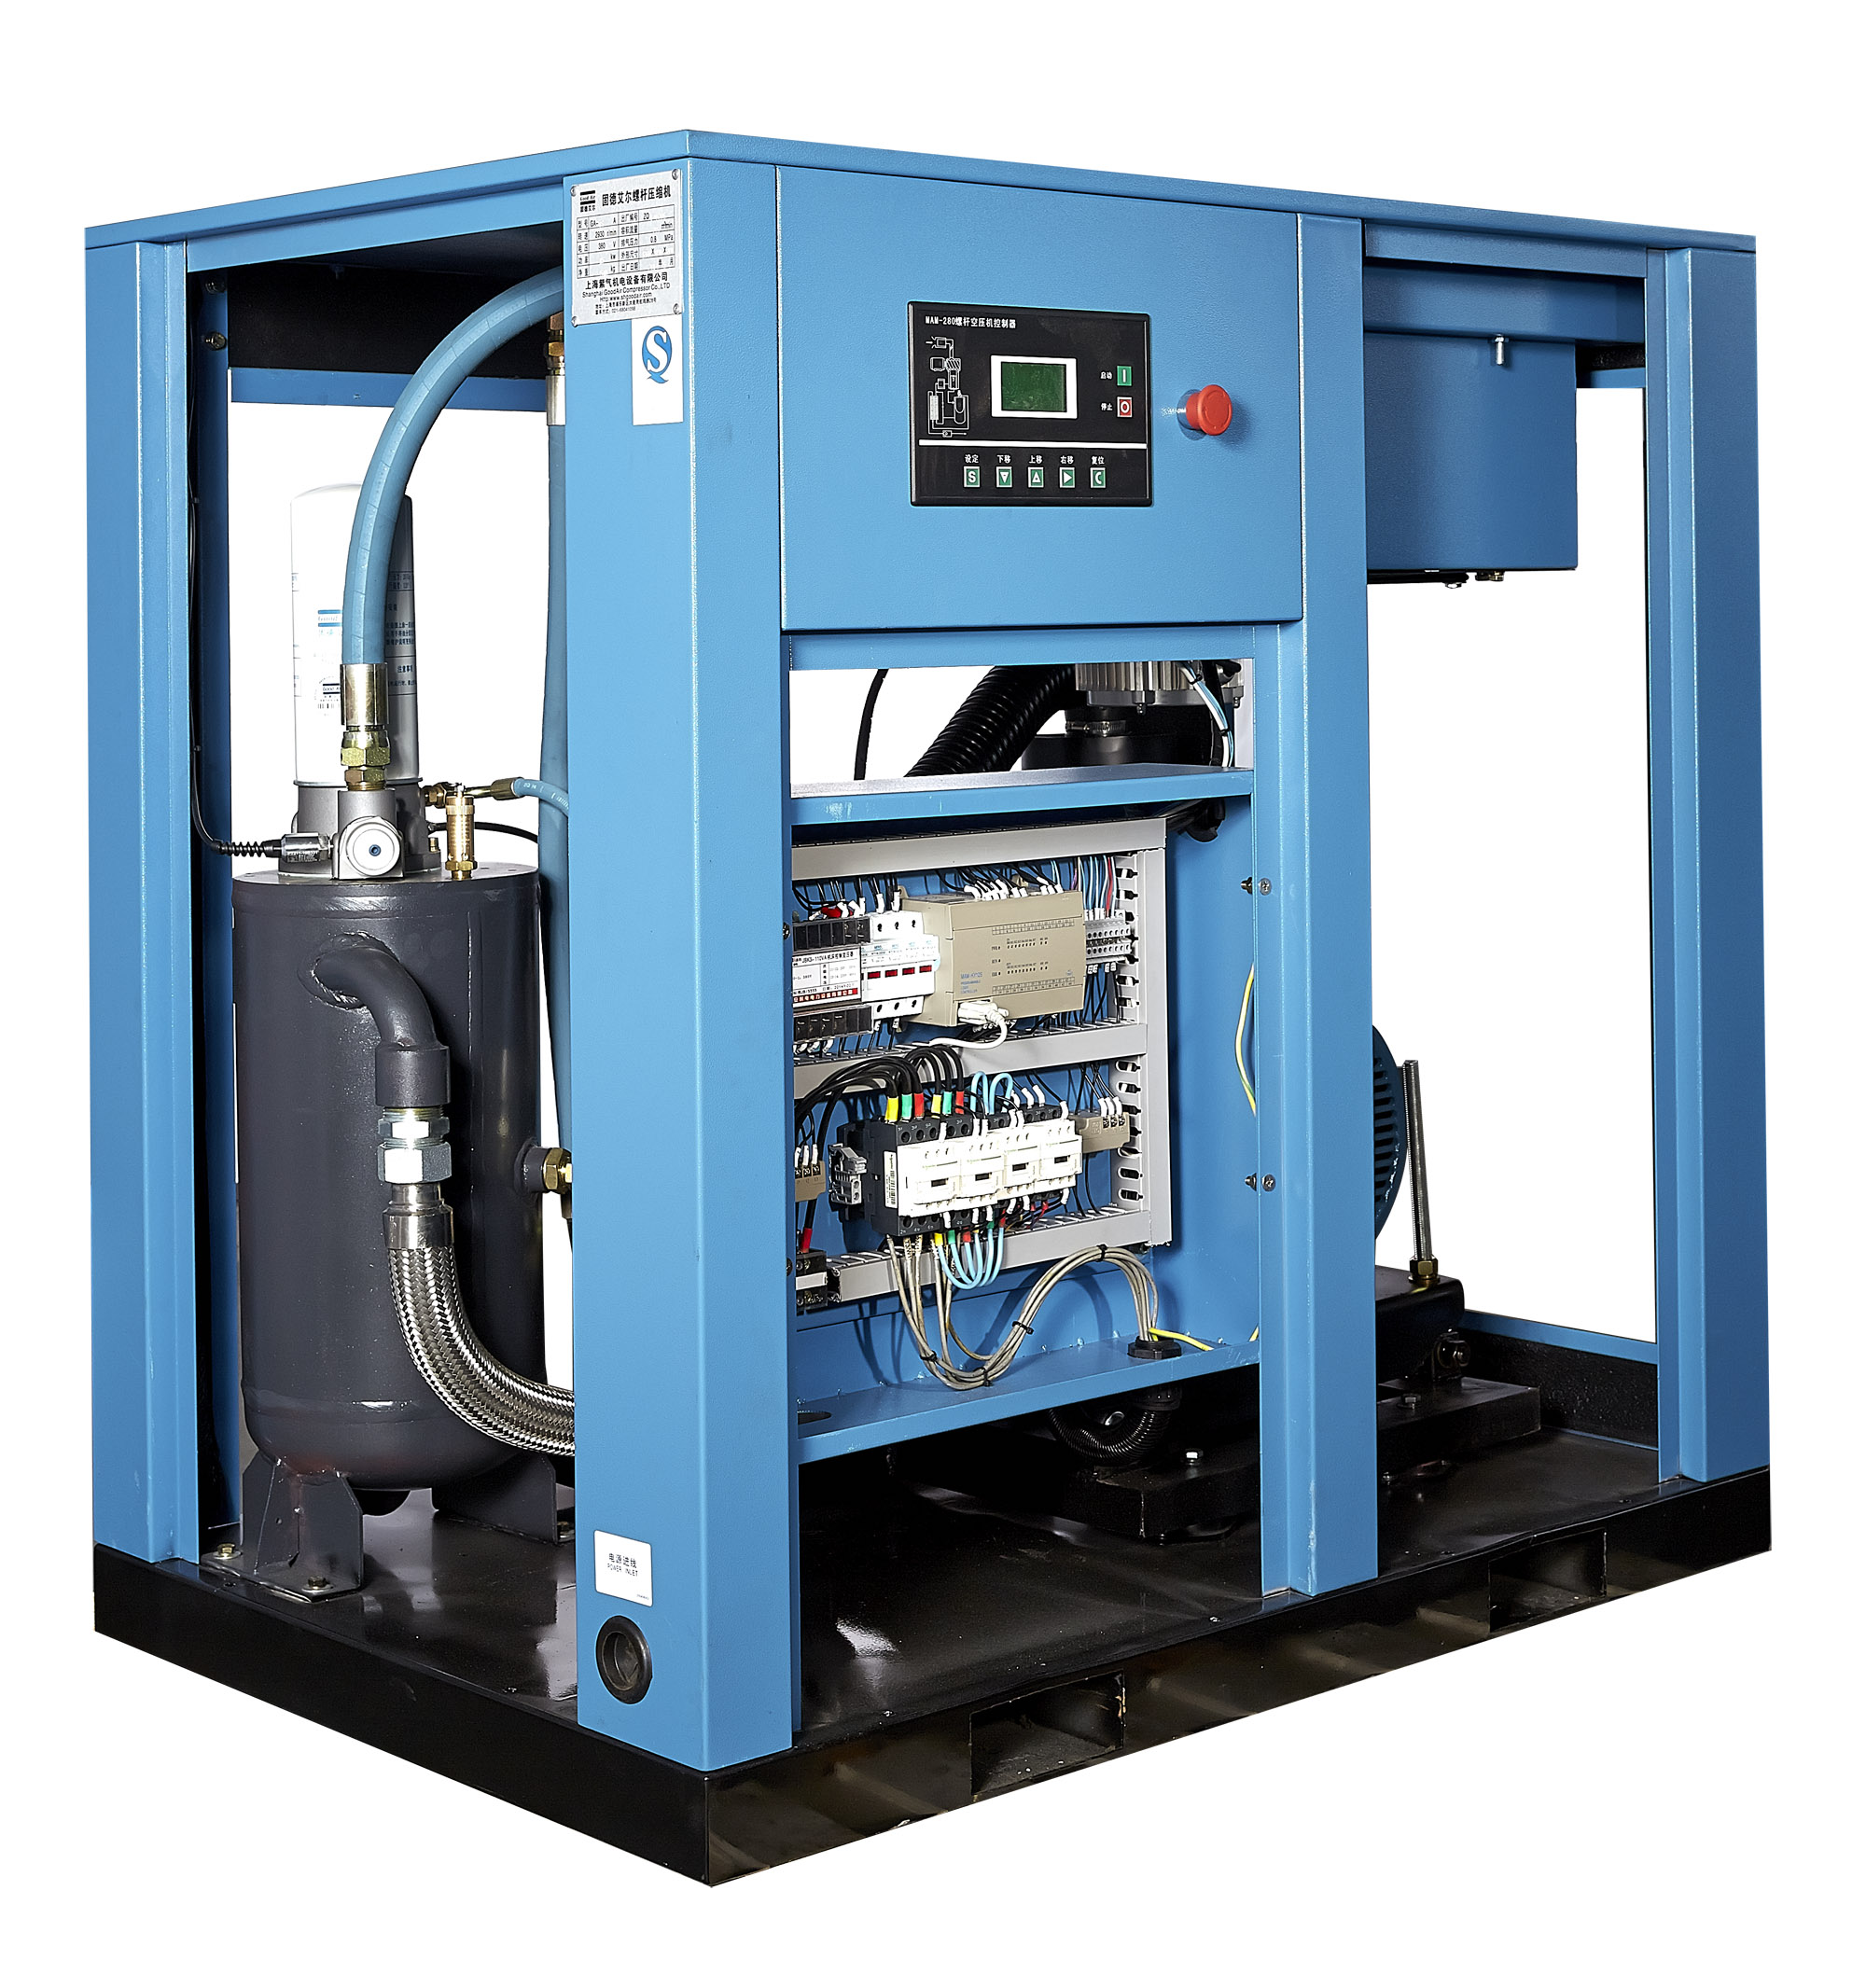 The marking method and technical parameters of air compressor